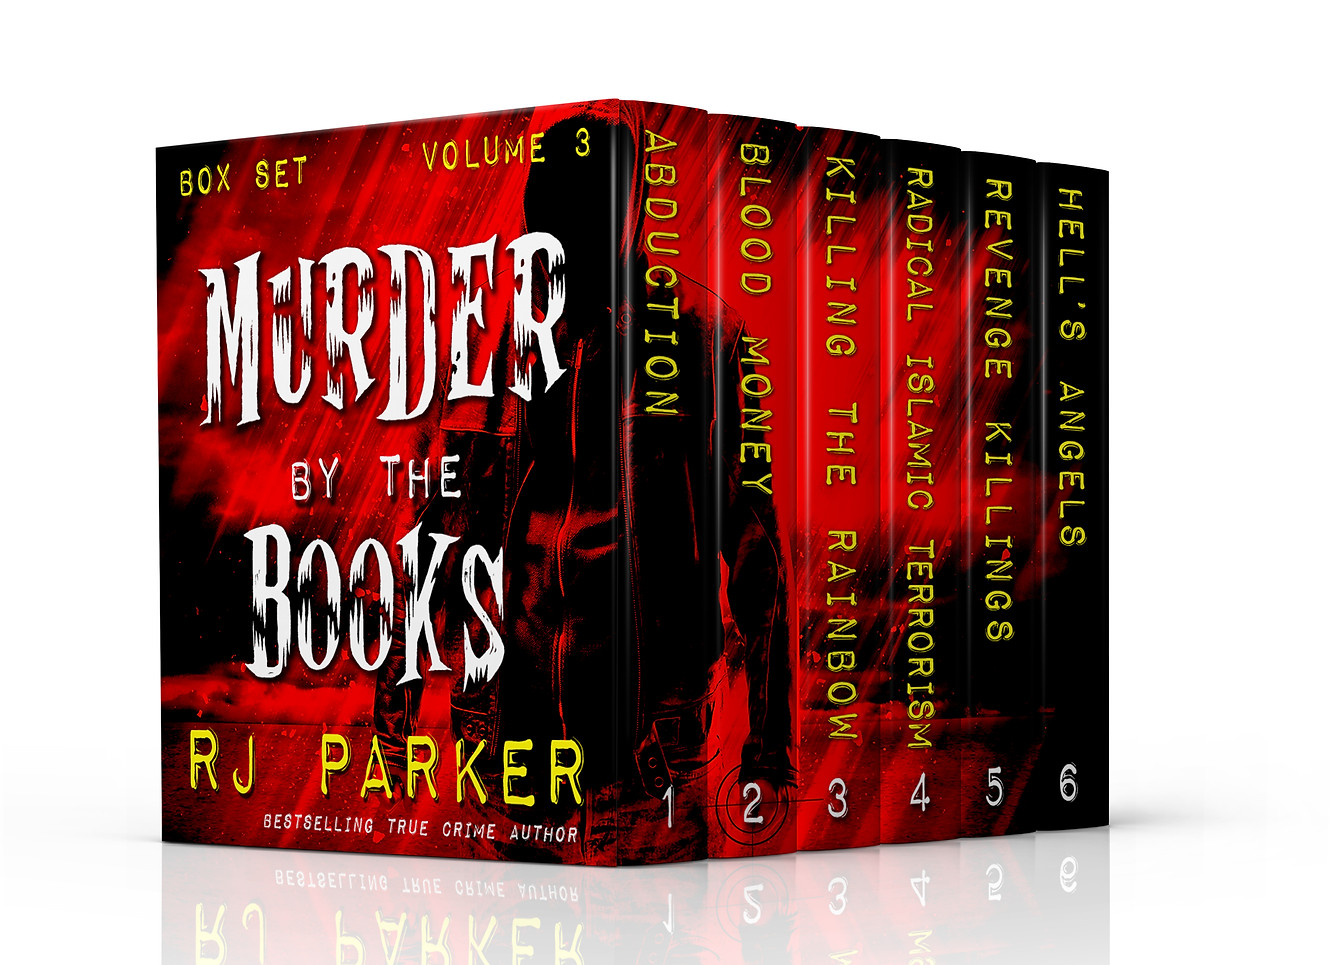 Murder by the Books Volume 3 by RJ Parke